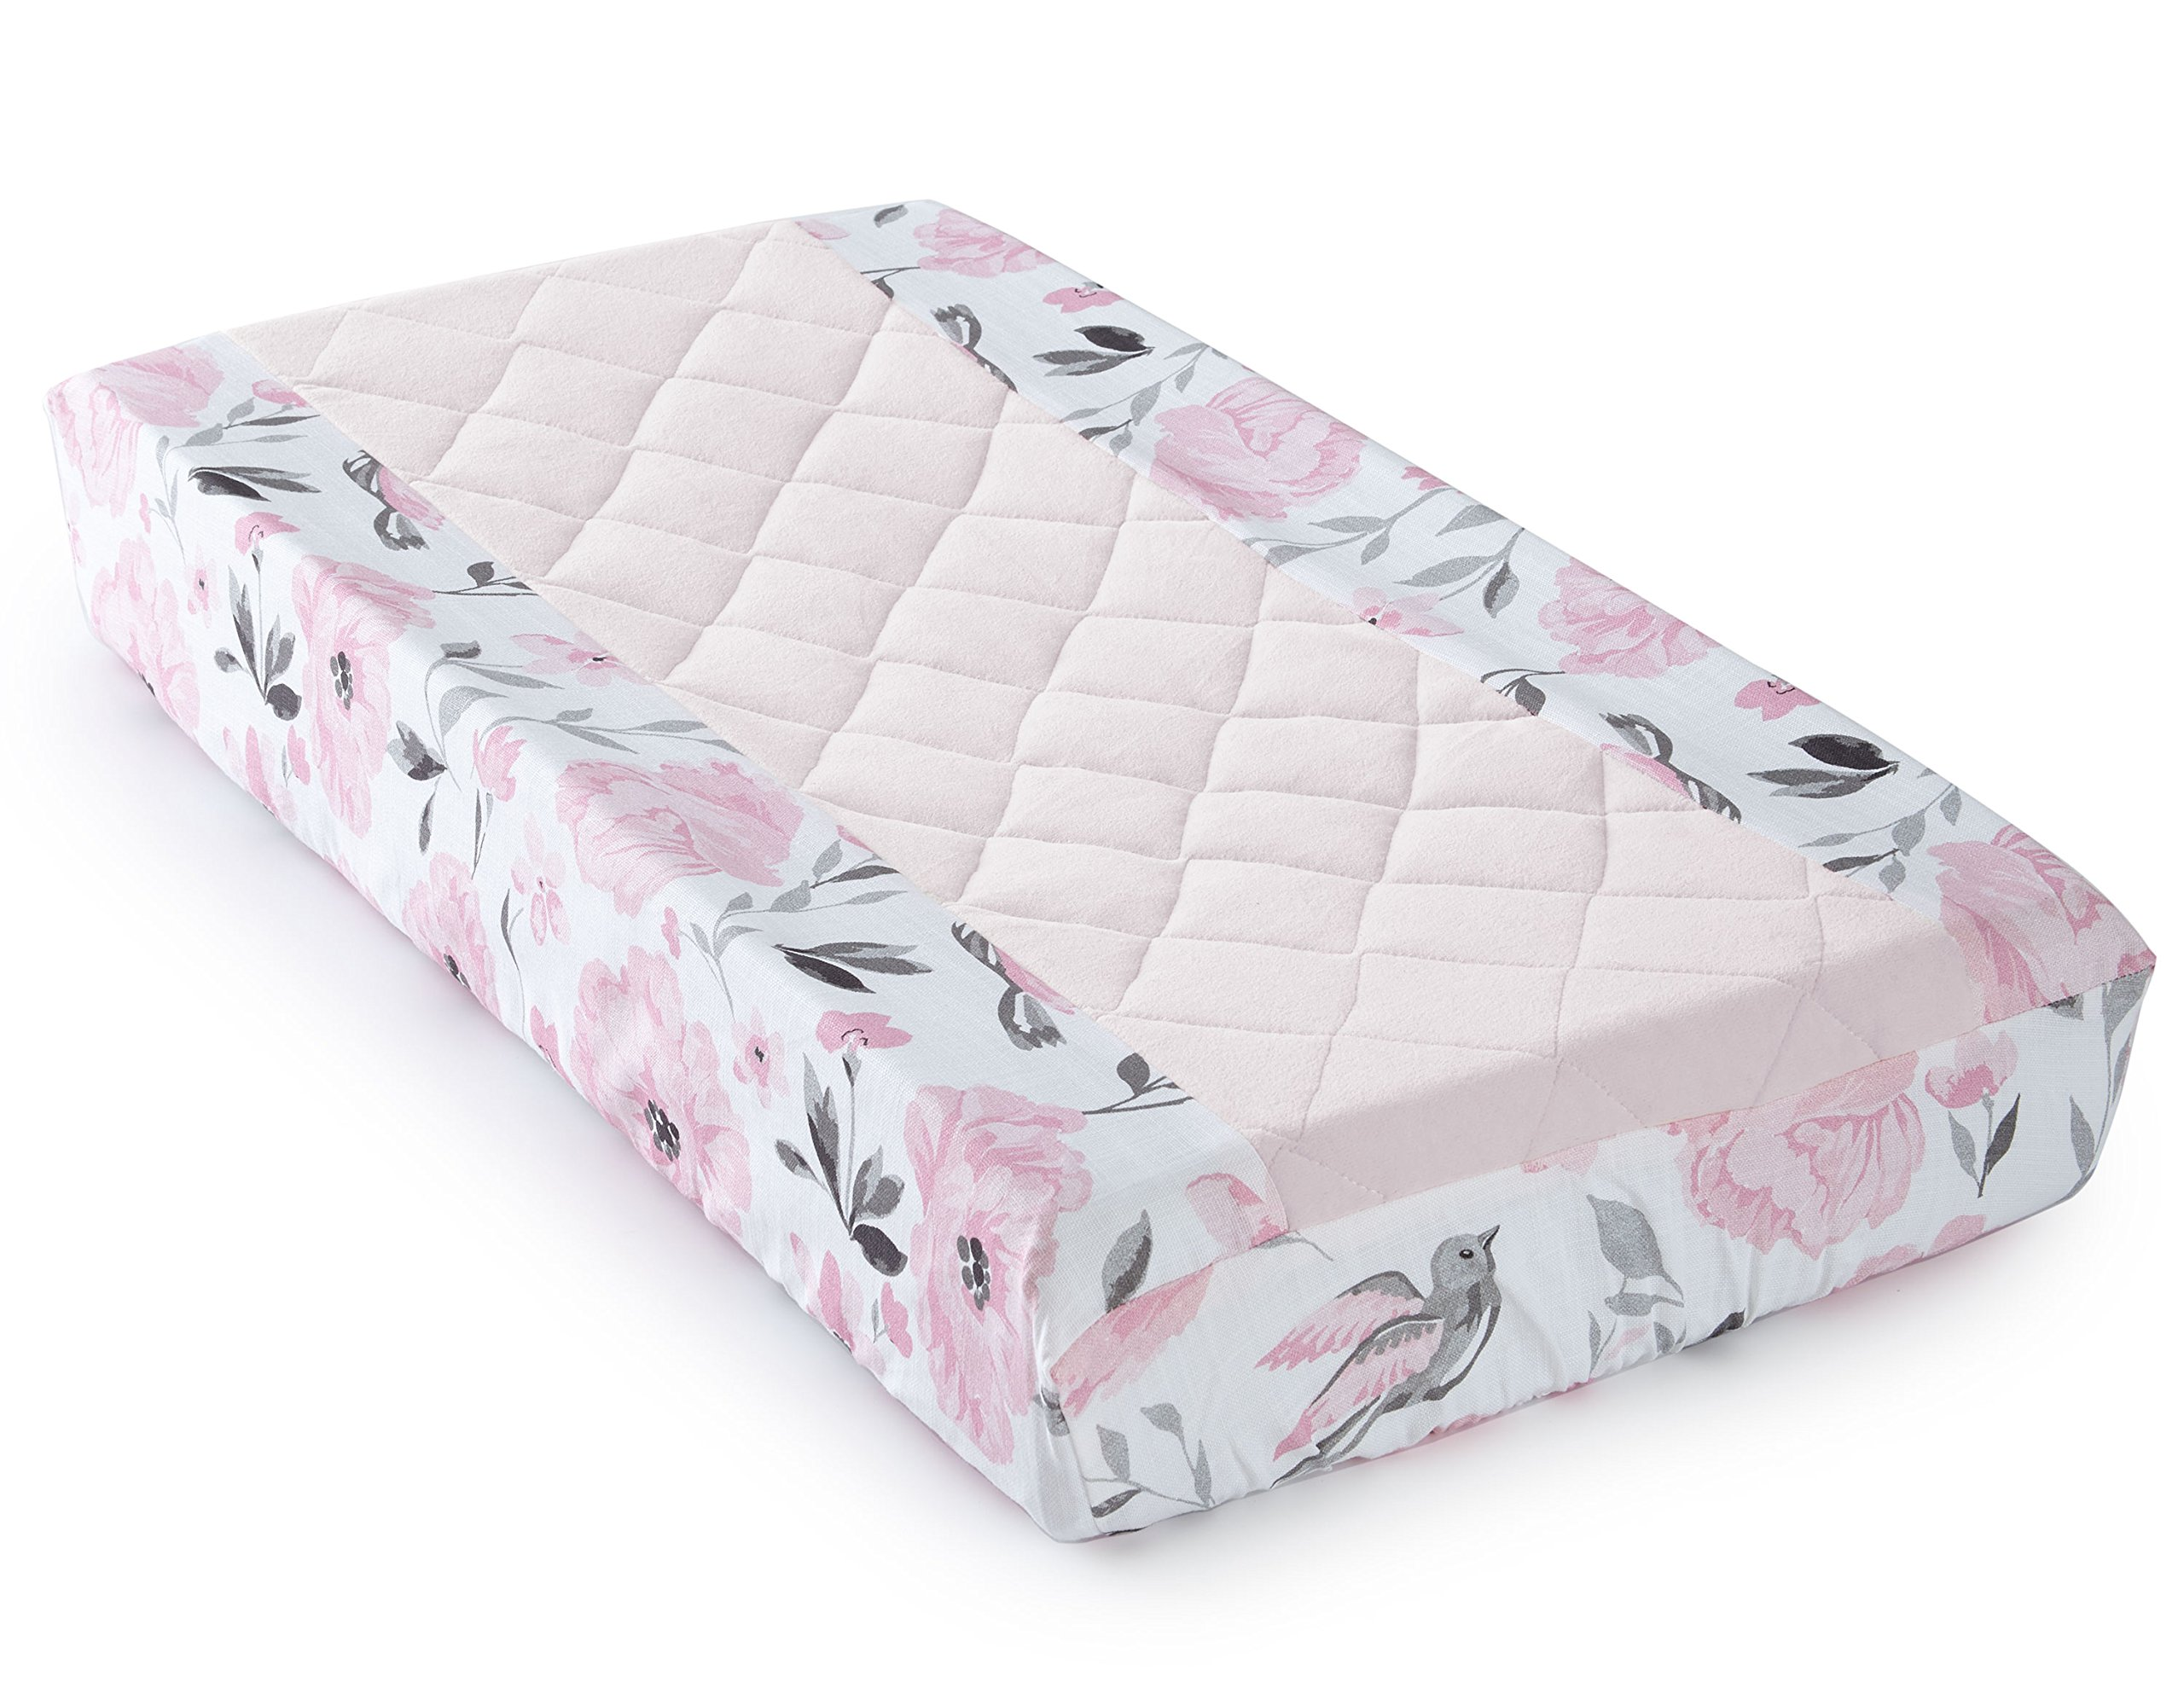 Levtex Baby - Elise Diaper Changing Pad Cover - Fits Most Standard Changing Pads - Floral Ogee Pattern - Pink, Grey and White - Nursery Accessories - Plush